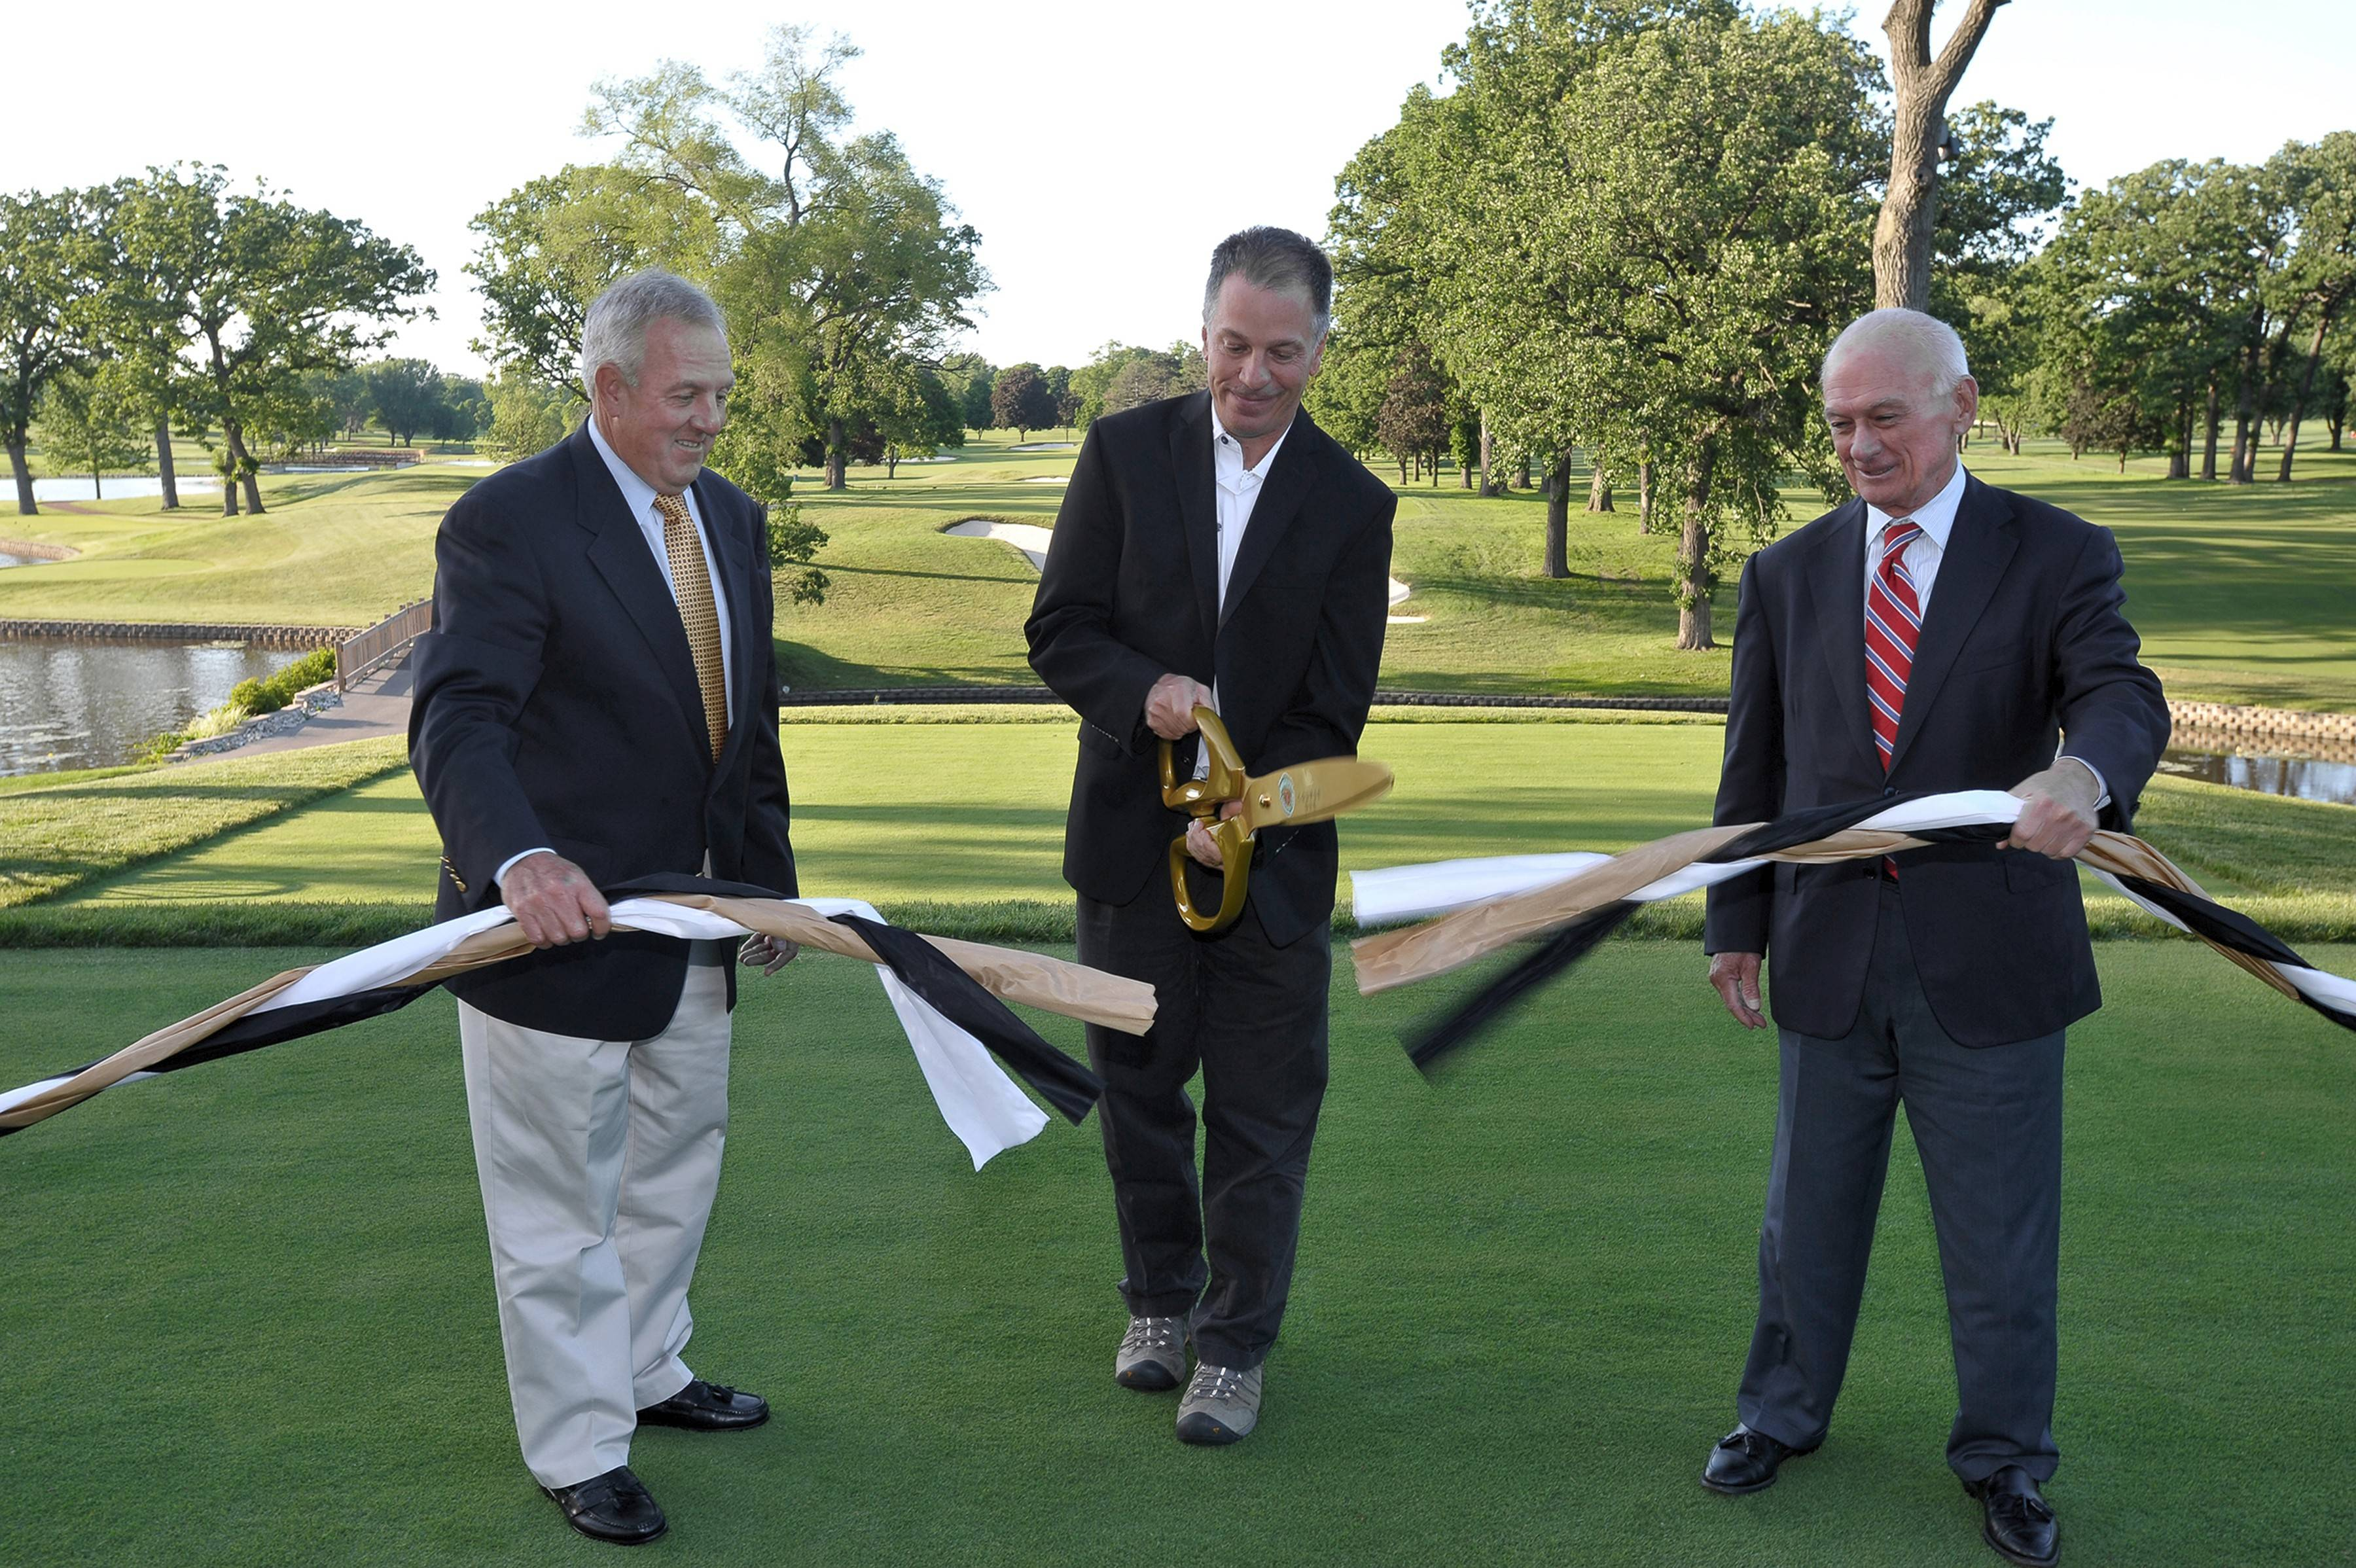 Taking part at the Medinah Course No. 1 ribbon-cutting ceremony on June 13 were Medinah Country Club vice president Bruce D'Angelo, left, architect Tom Doak, and Medinah Country Club president Matthias A. Lydon